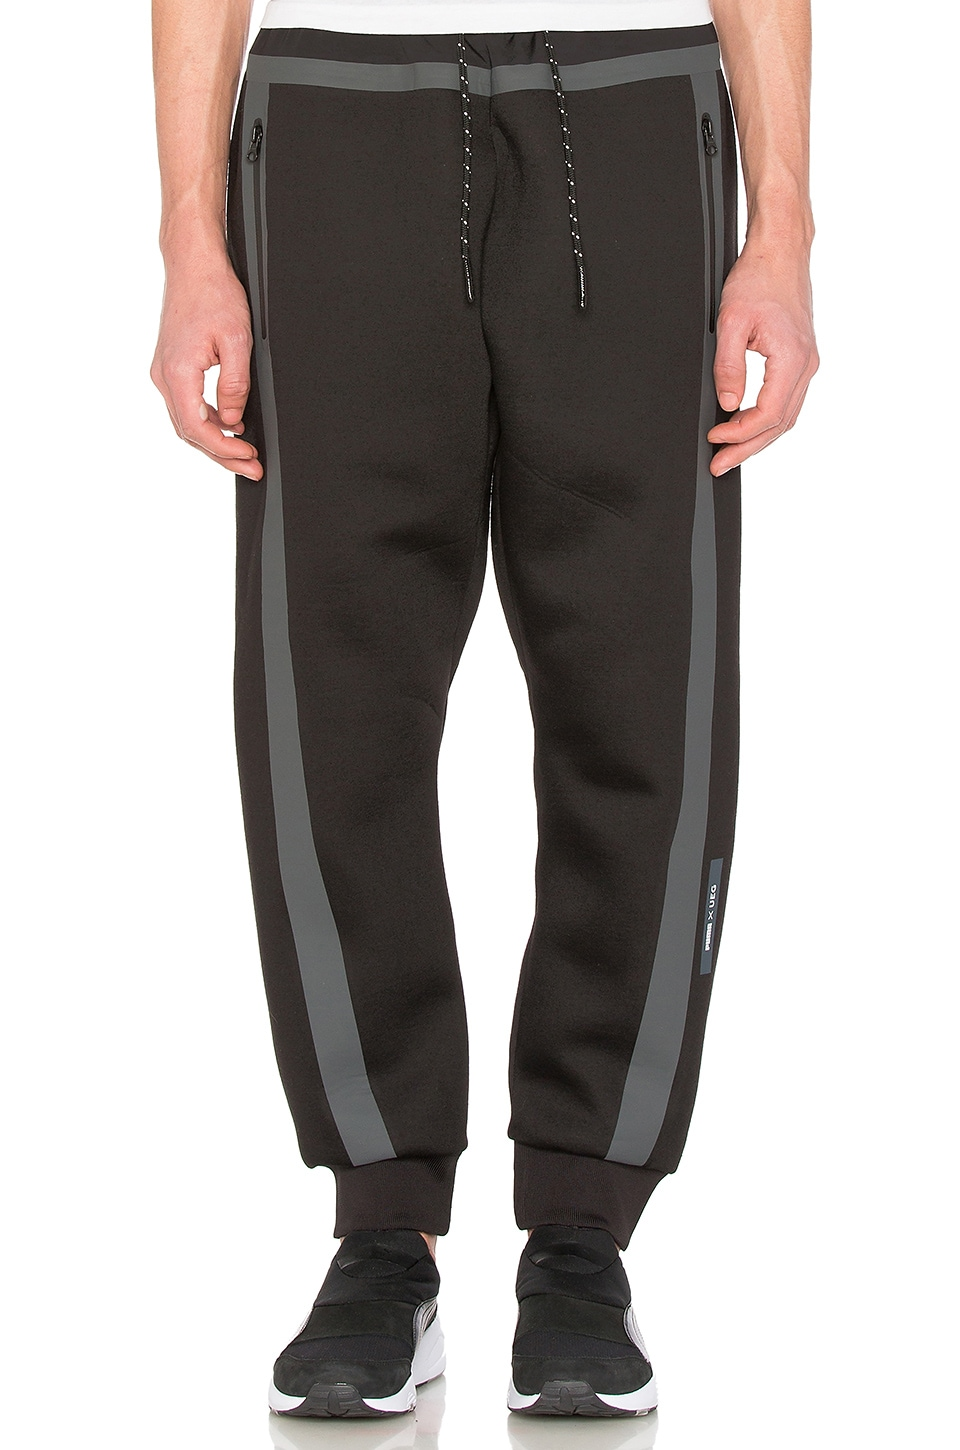 x UEG Sweat Pants by Puma Select